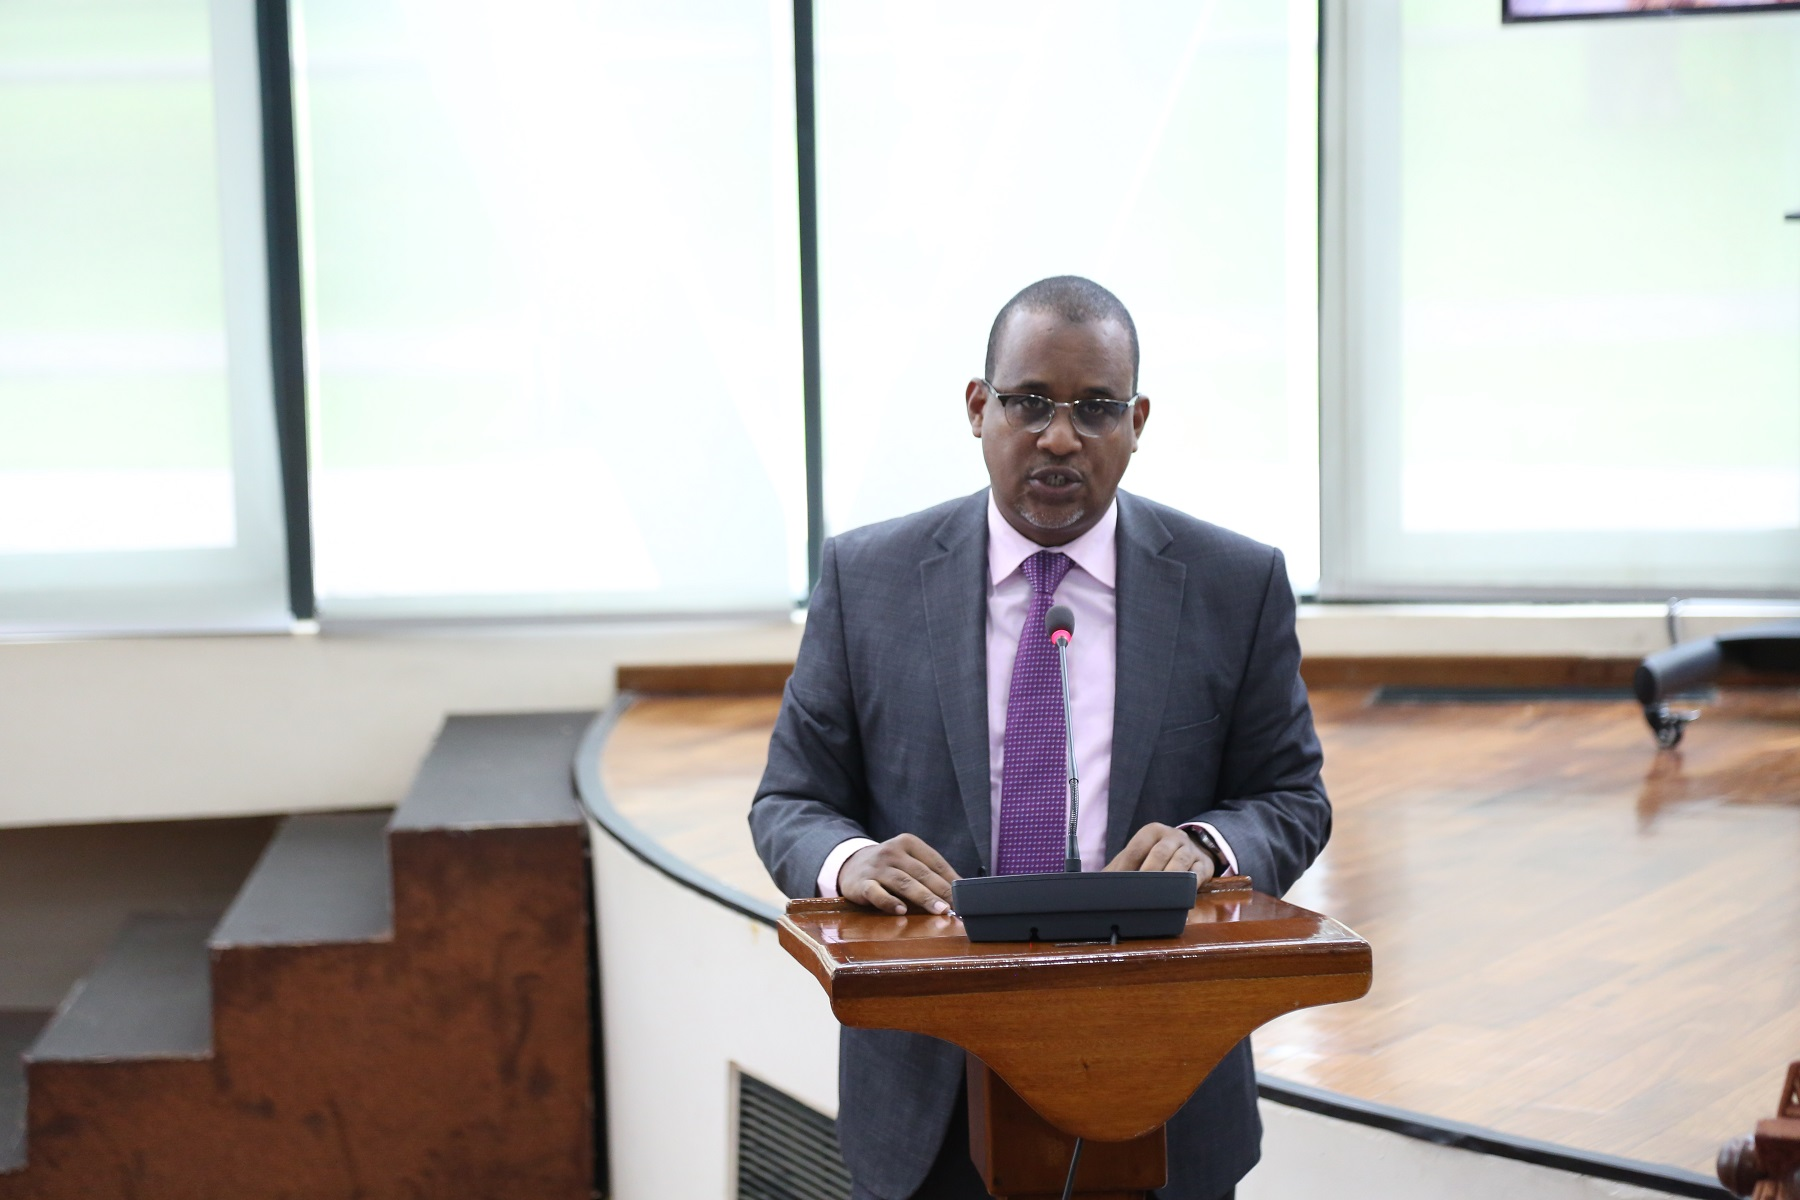 Chair of the Committee on General Purpose Committee, Hon Abdikadir O. Aden, presents the Committee's report on the EAC Supplementary Appropriation Bill, 2020.